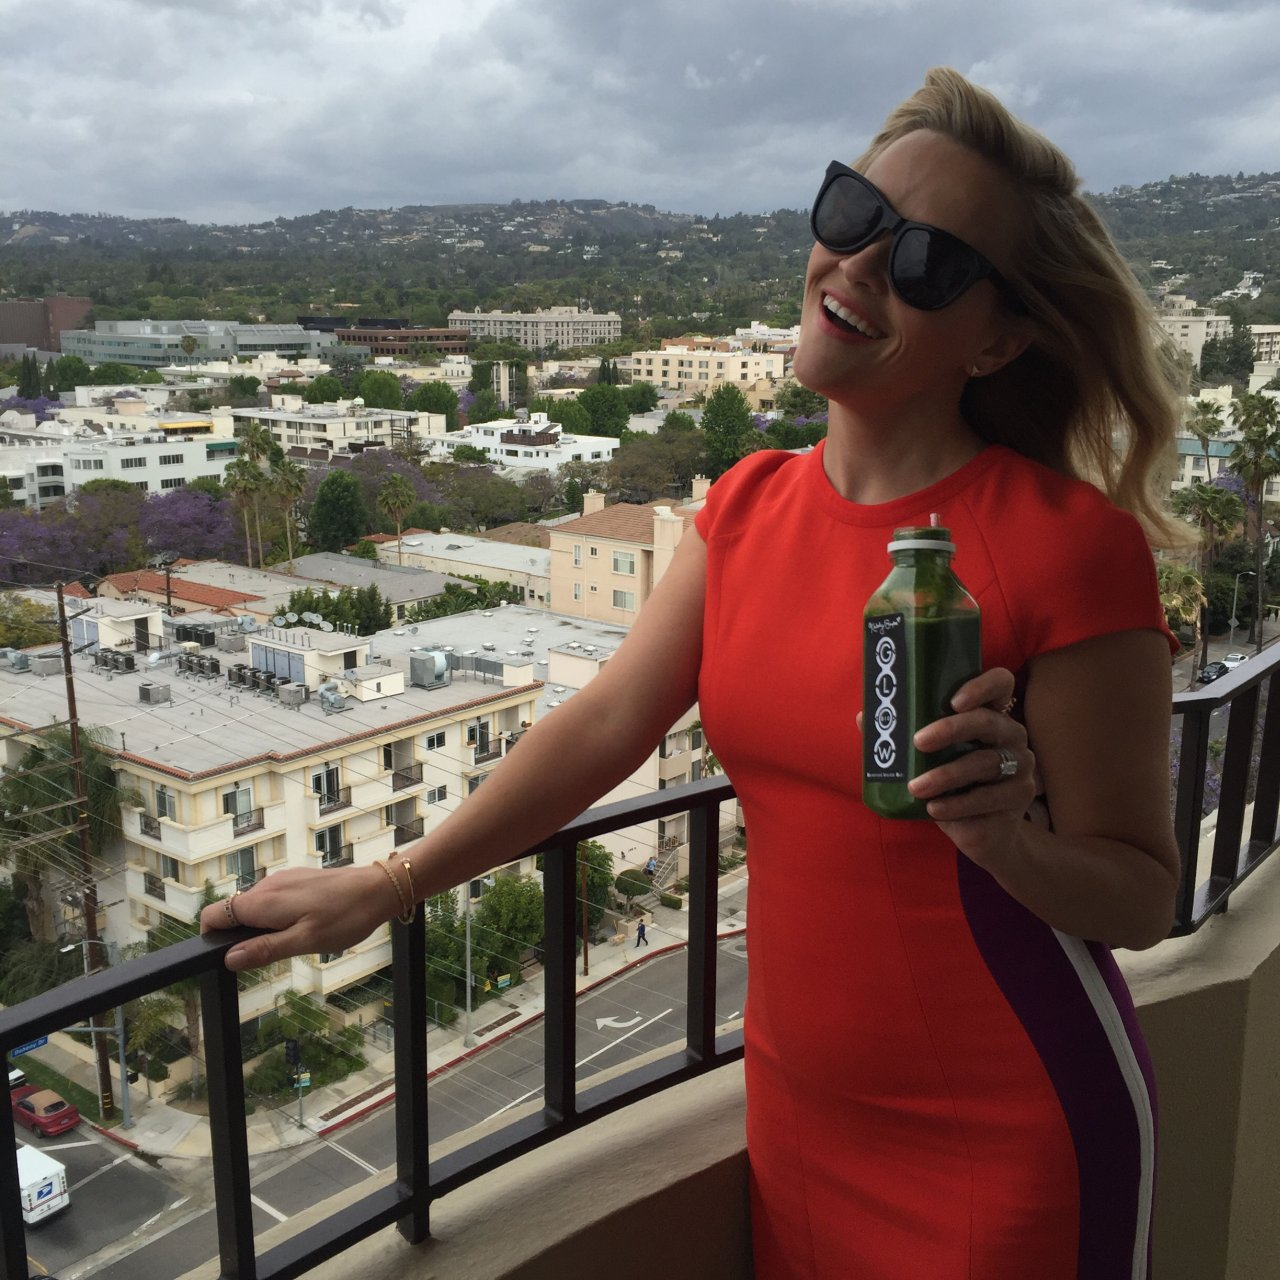 Reese Witherspoon Nude Video And Photos Leaked | #